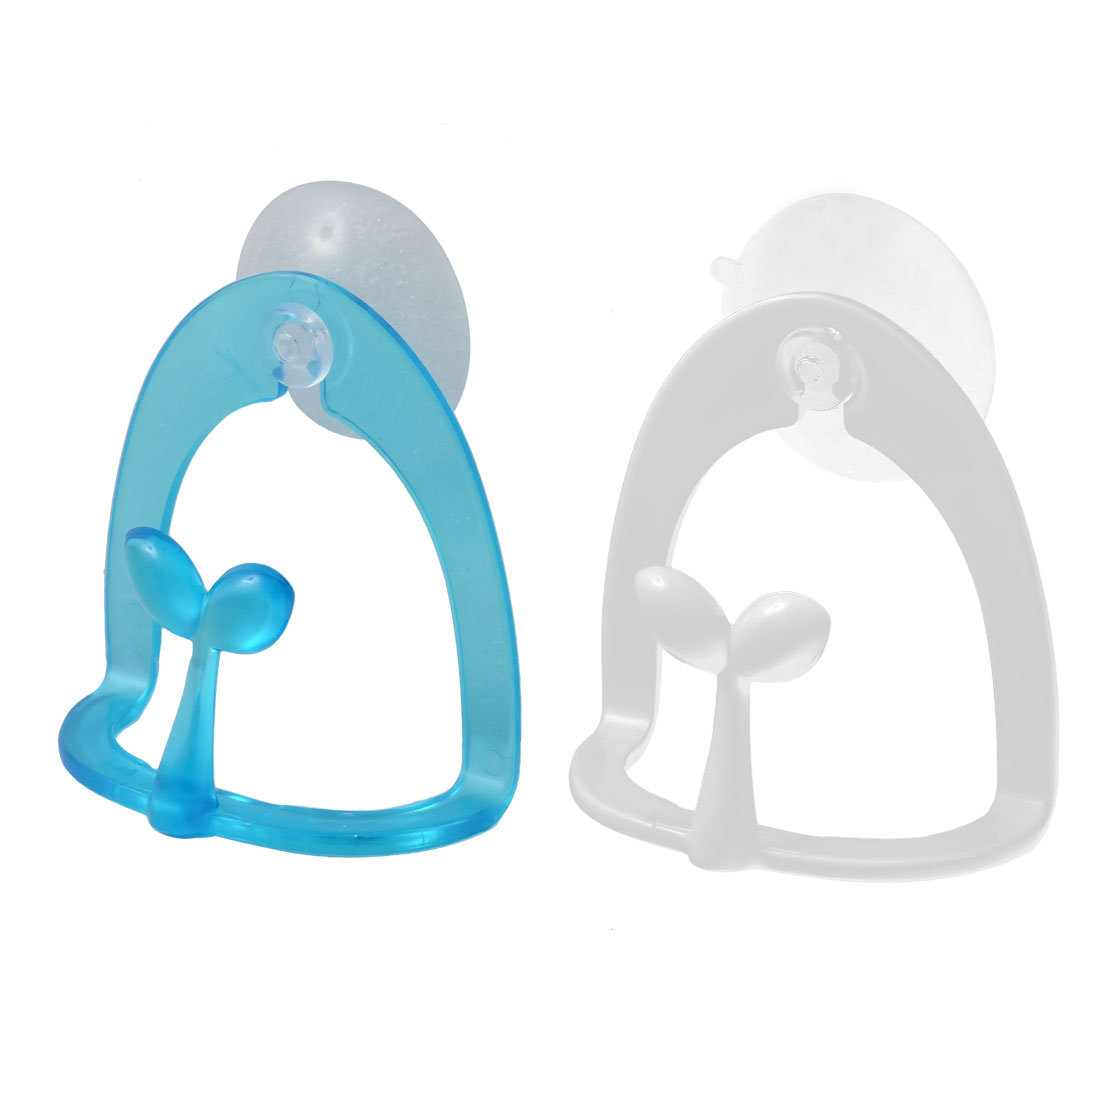 Uxcell Sprout Design Wall Mounted Towel Soap Sponge Holder 2PCS w Suction Cup